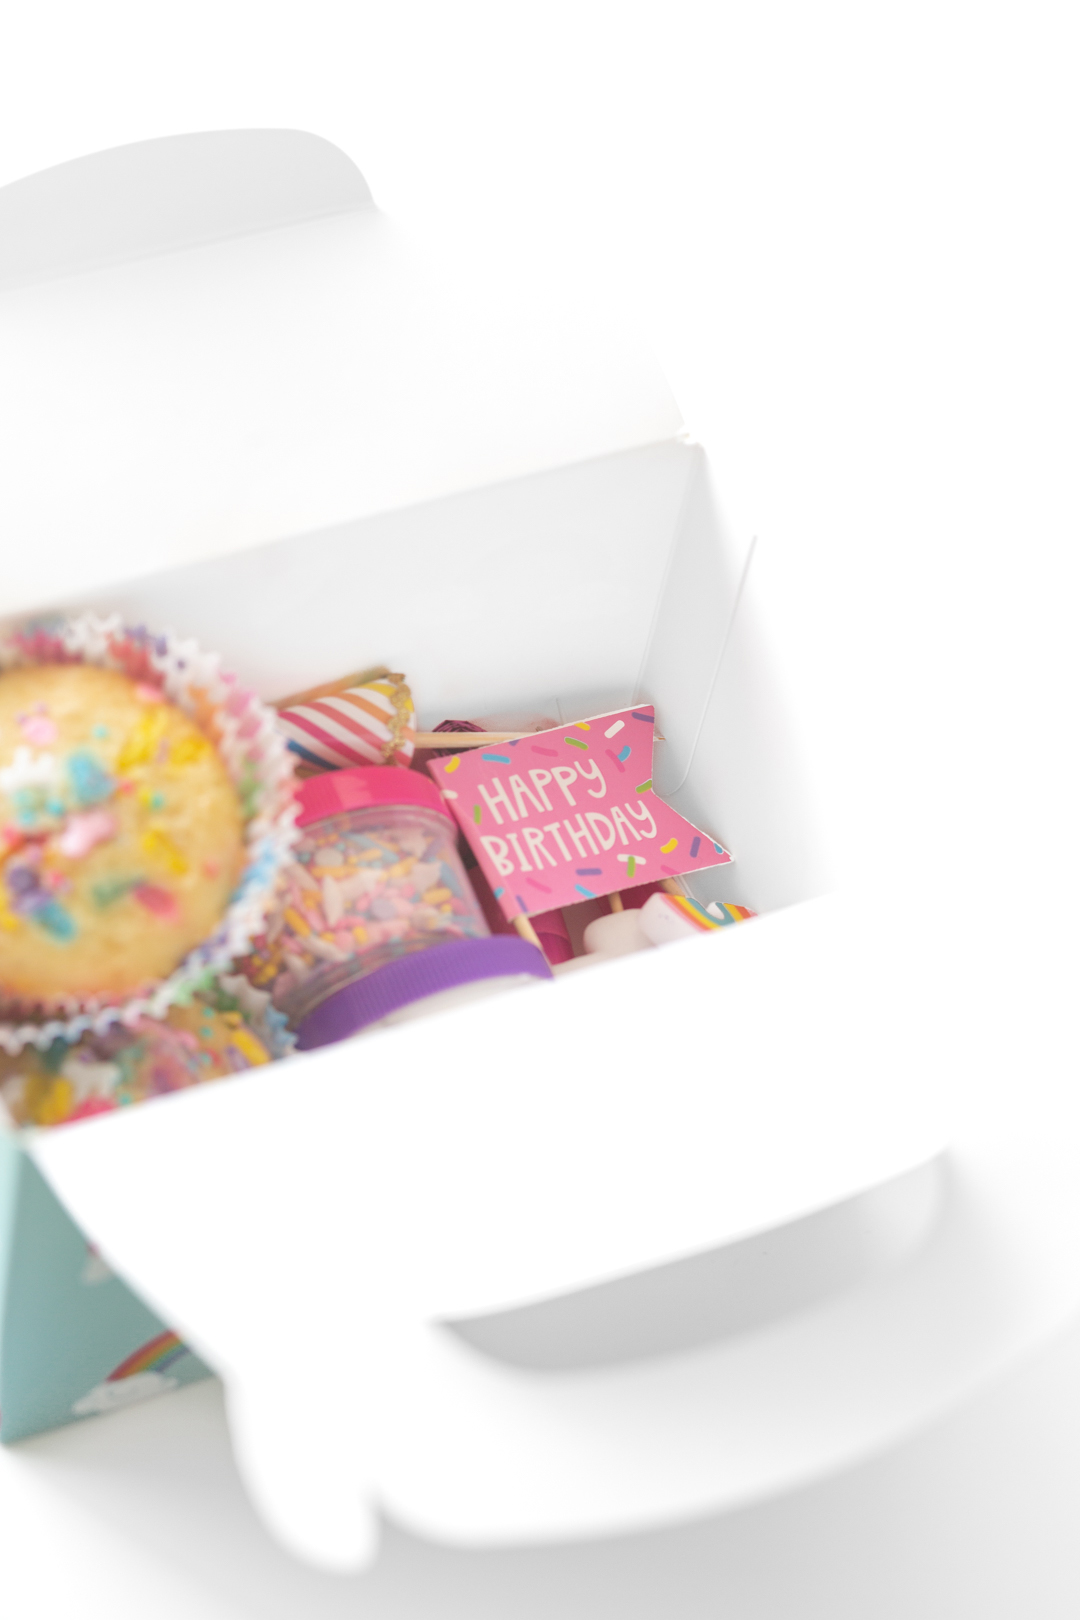 peek inside of a cupcake decorating kit with happy birthday cupcake pics, sprinkles and unfrosted cupcakes